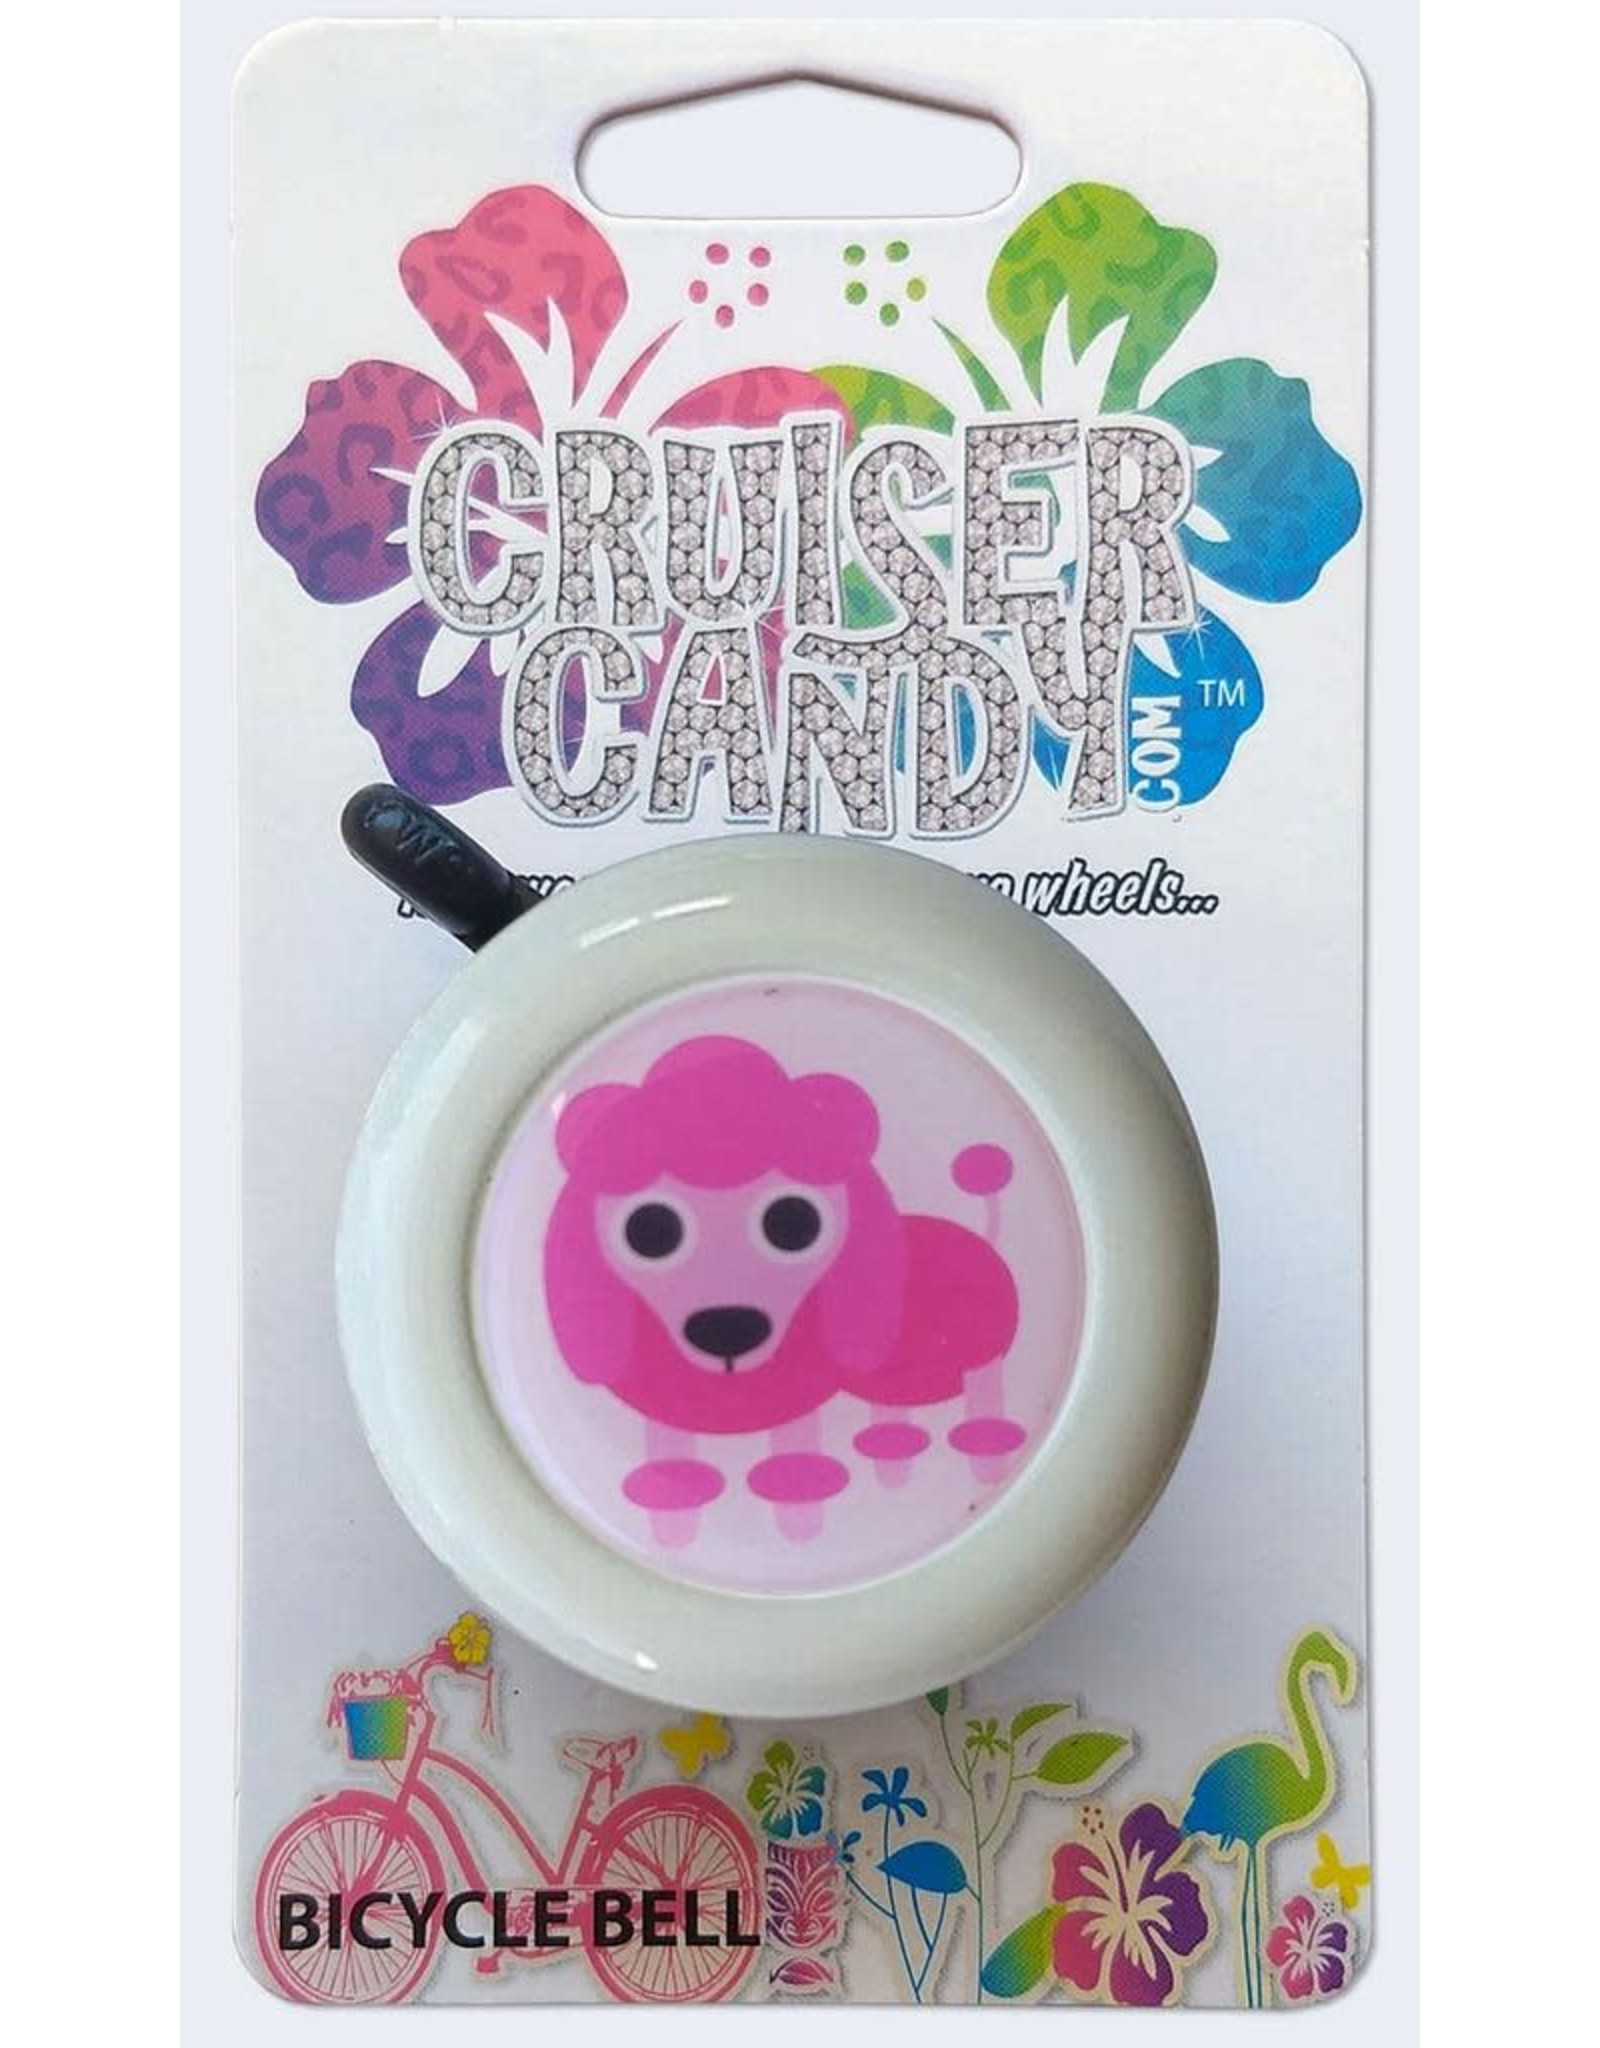 Cruiser Candy Cruiser Candy Bell - Pink Poodle